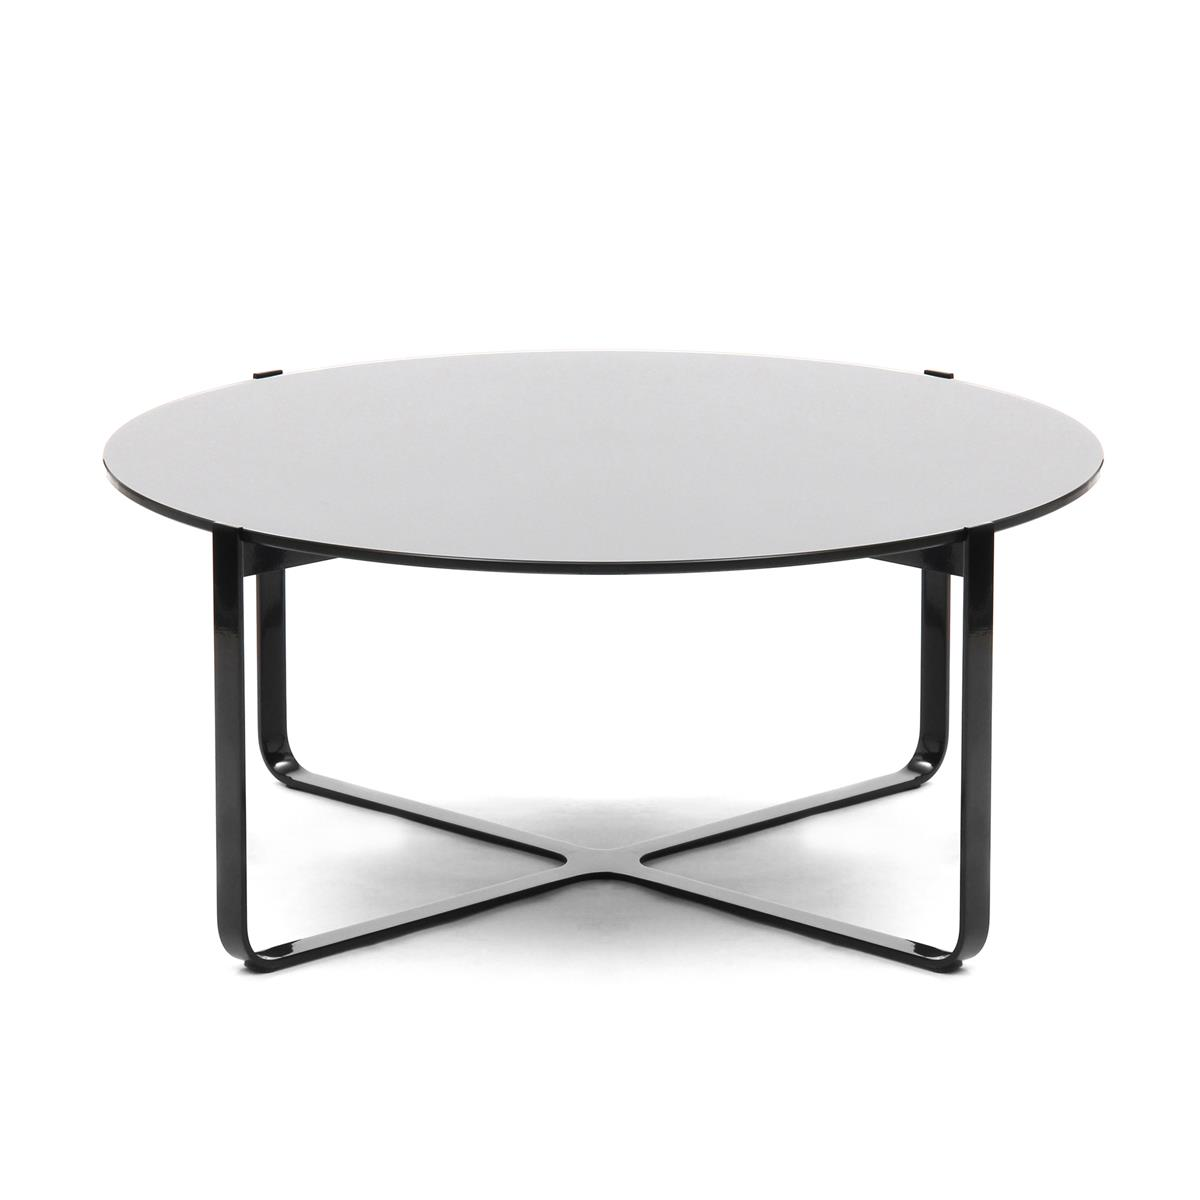 Trace Circular Table Ø80 x H35 cm i sort med glasstopp